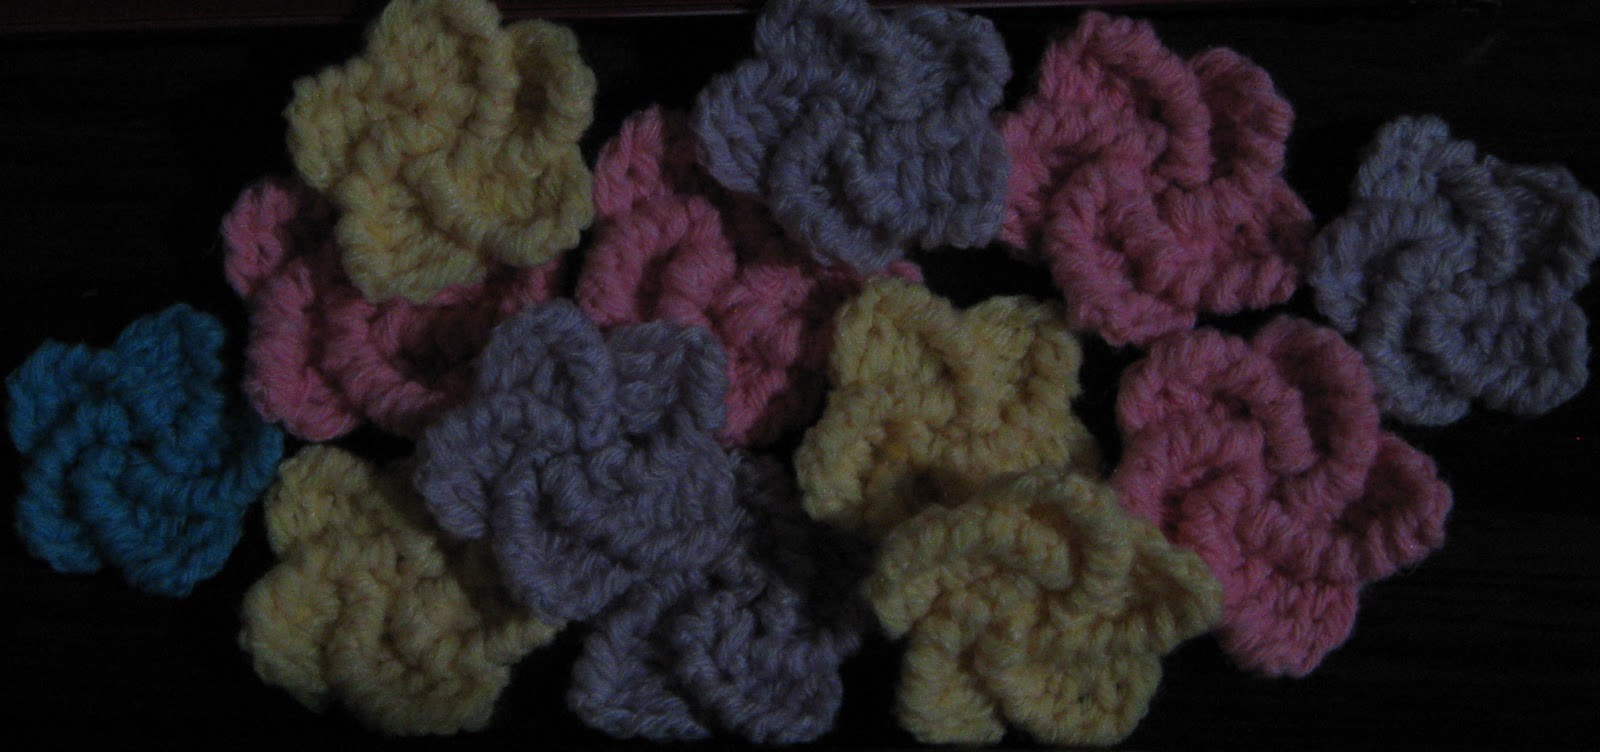 Spiral Crochet Flower Pattern Free : The Crochet Charm: Tiny spiral flower with 5 petals